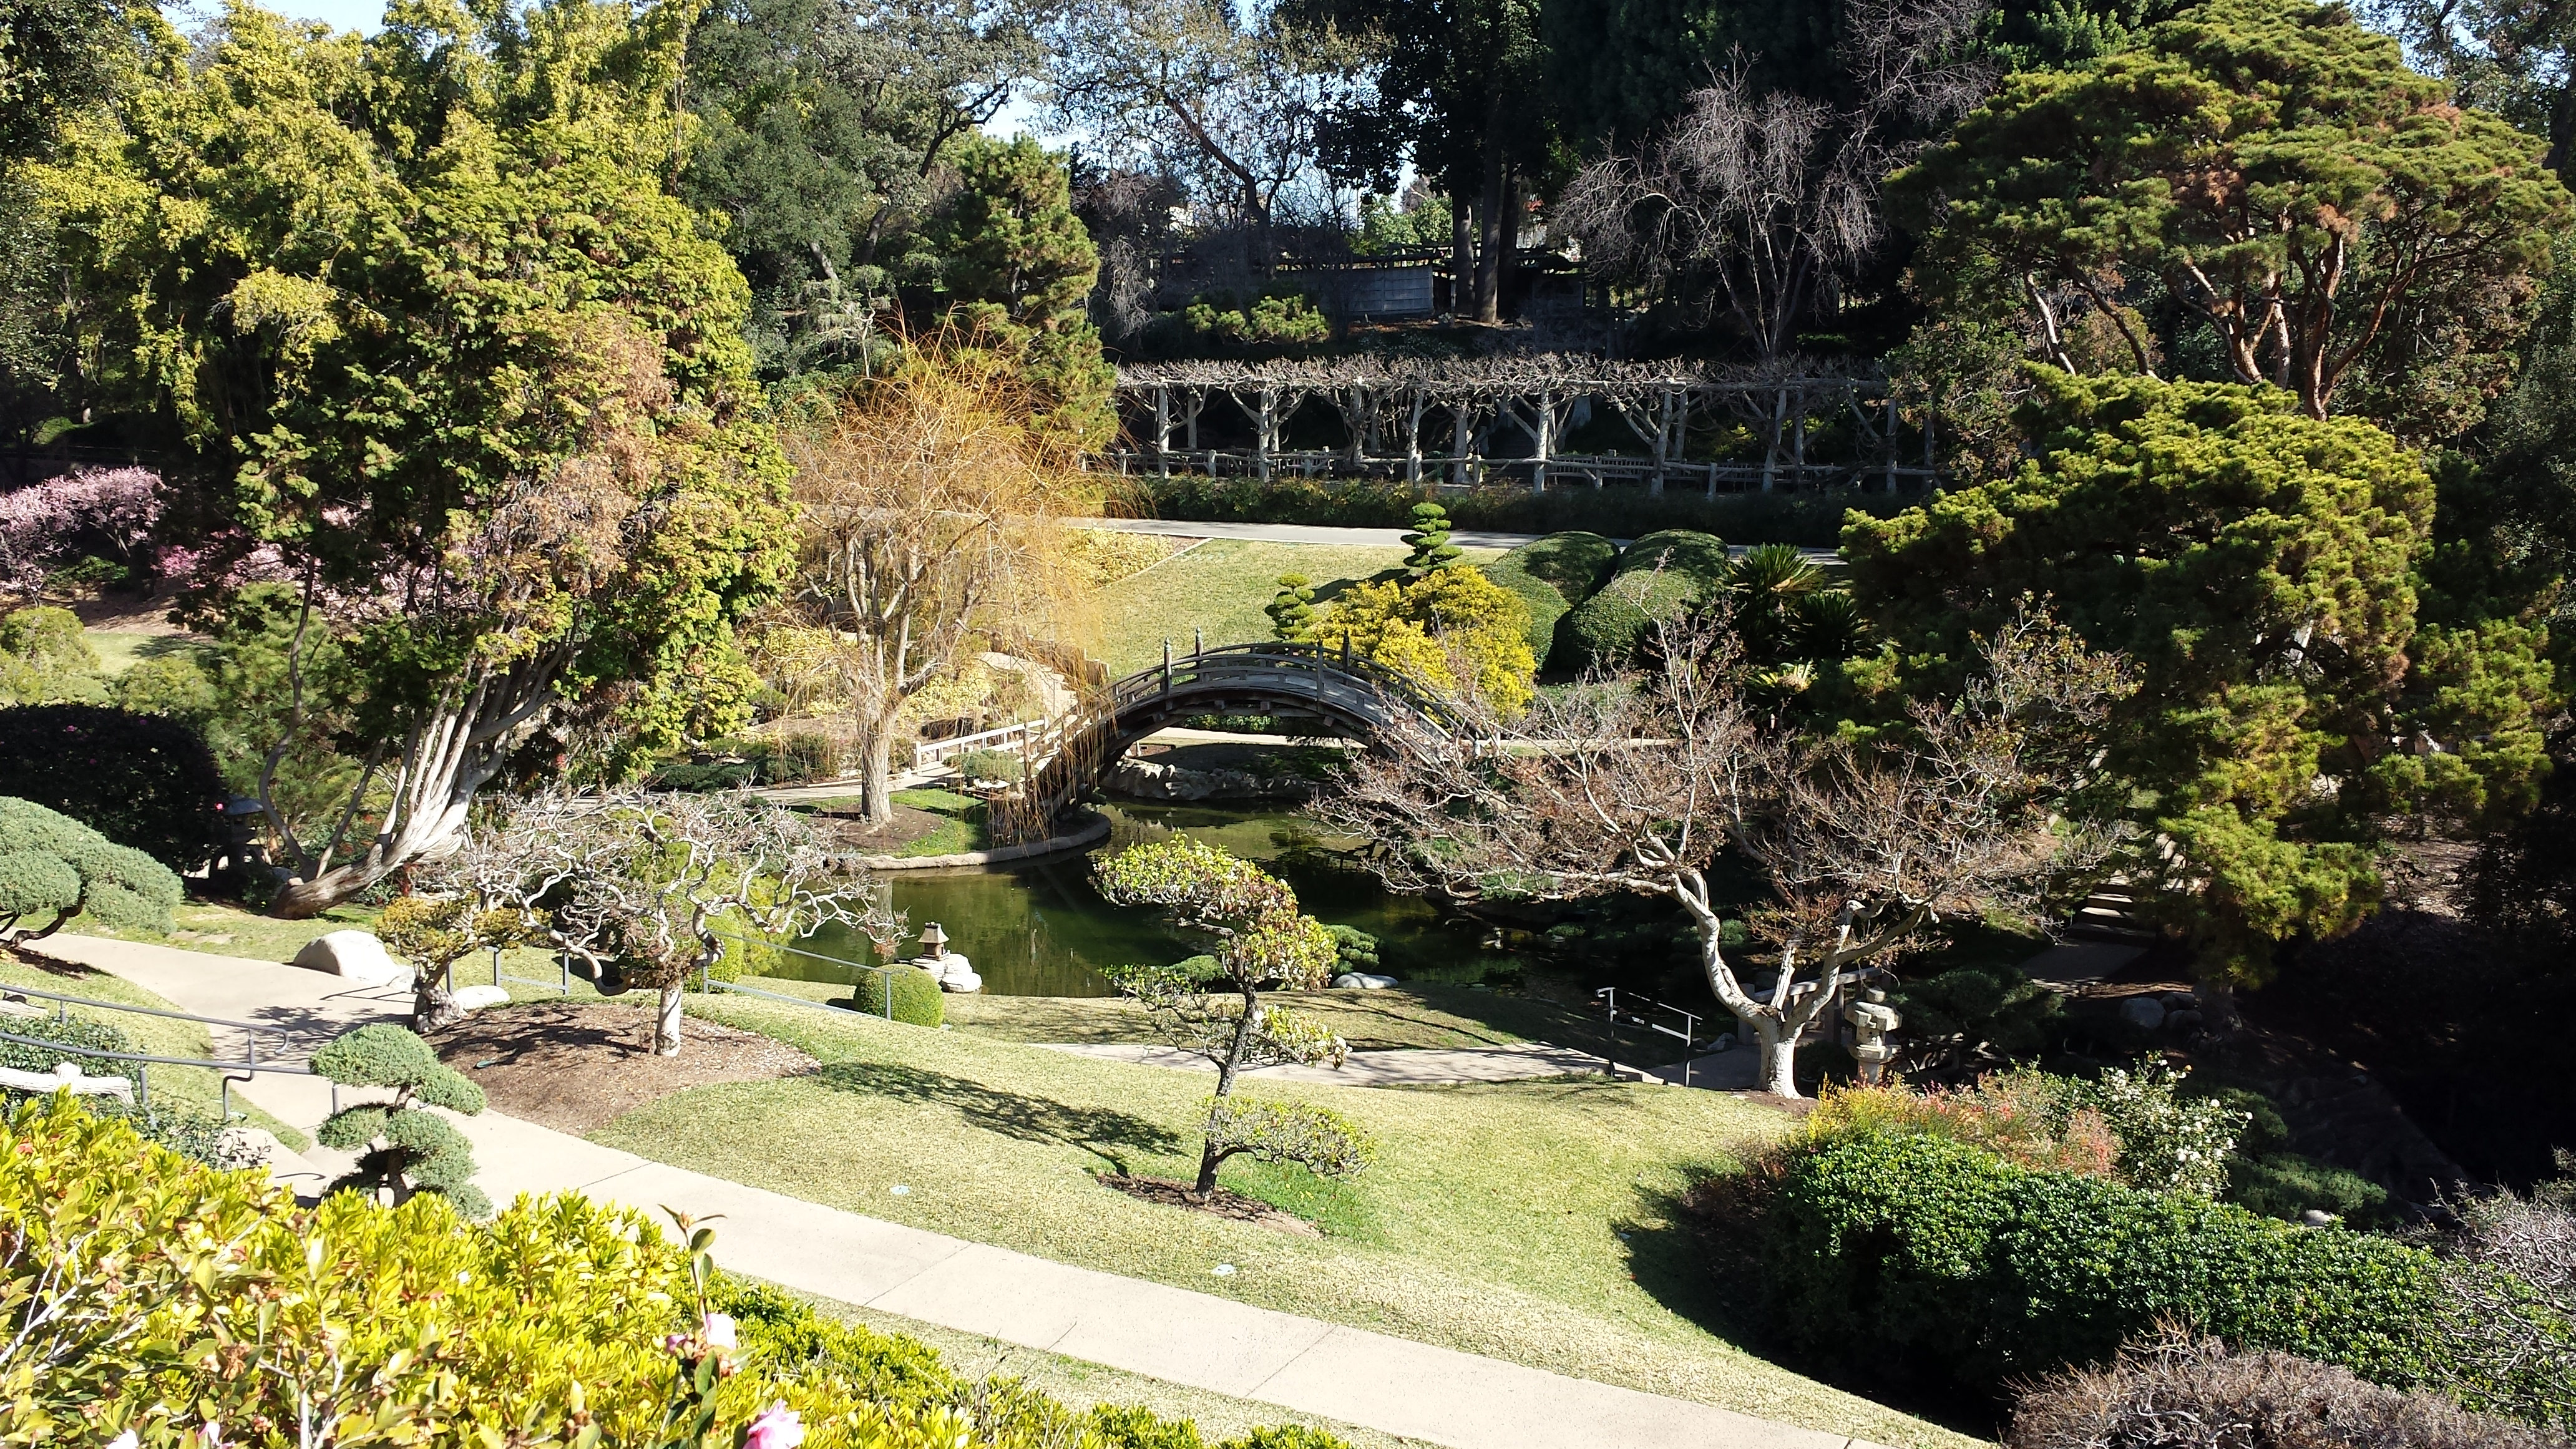 My Favorite Among Them Is The Japanese Garden With Its Authentic Japanese  House That Offers A Picturesque View To The Pond With Its Arching Wooden  Bridge.